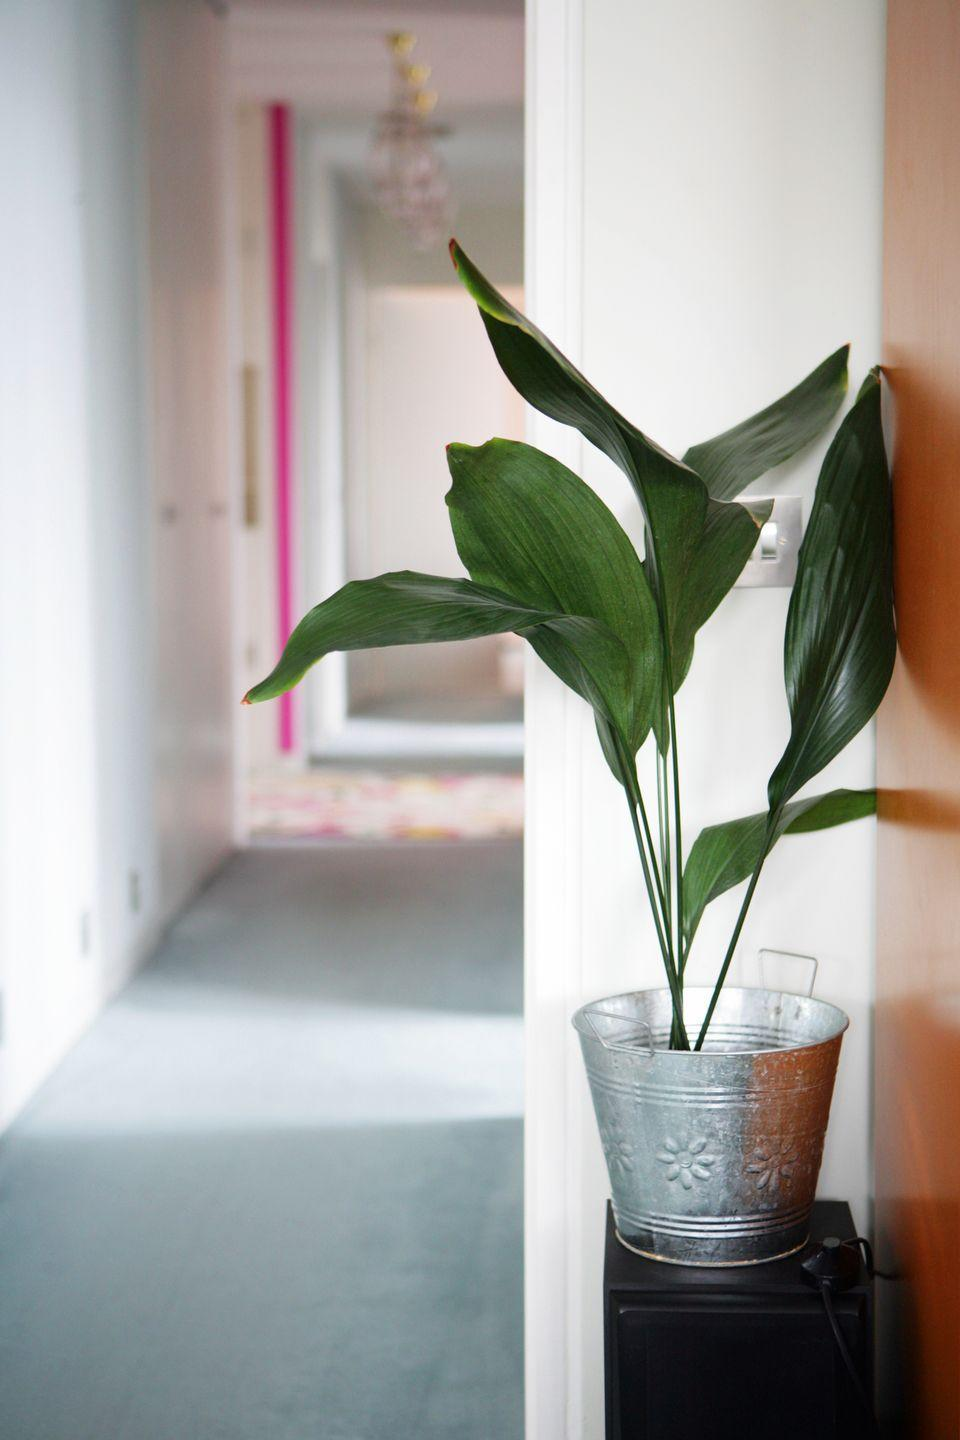 """<p><a class=""""link rapid-noclick-resp"""" href=""""https://www.amazon.com/Costa-Farms-Spathiphyllum-Indoor-Excellent/dp/B01ERMWI9M/?tag=syn-yahoo-20&ascsubtag=%5Bartid%7C10057.g.3716%5Bsrc%7Cyahoo-us"""" rel=""""nofollow noopener"""" target=""""_blank"""" data-ylk=""""slk:BUY NOW"""">BUY NOW</a> <strong><em>$21, amazon.com</em></strong></p><p>These beautiful flowering plants are surprisingly easy to grow. Just keep the soil moist (but avoid overwatering!) and mist its leaves regularly, and you'll have a happy plant. Oh, and while they prefer some light, make sure you keep them out of direct sunlight. </p>"""